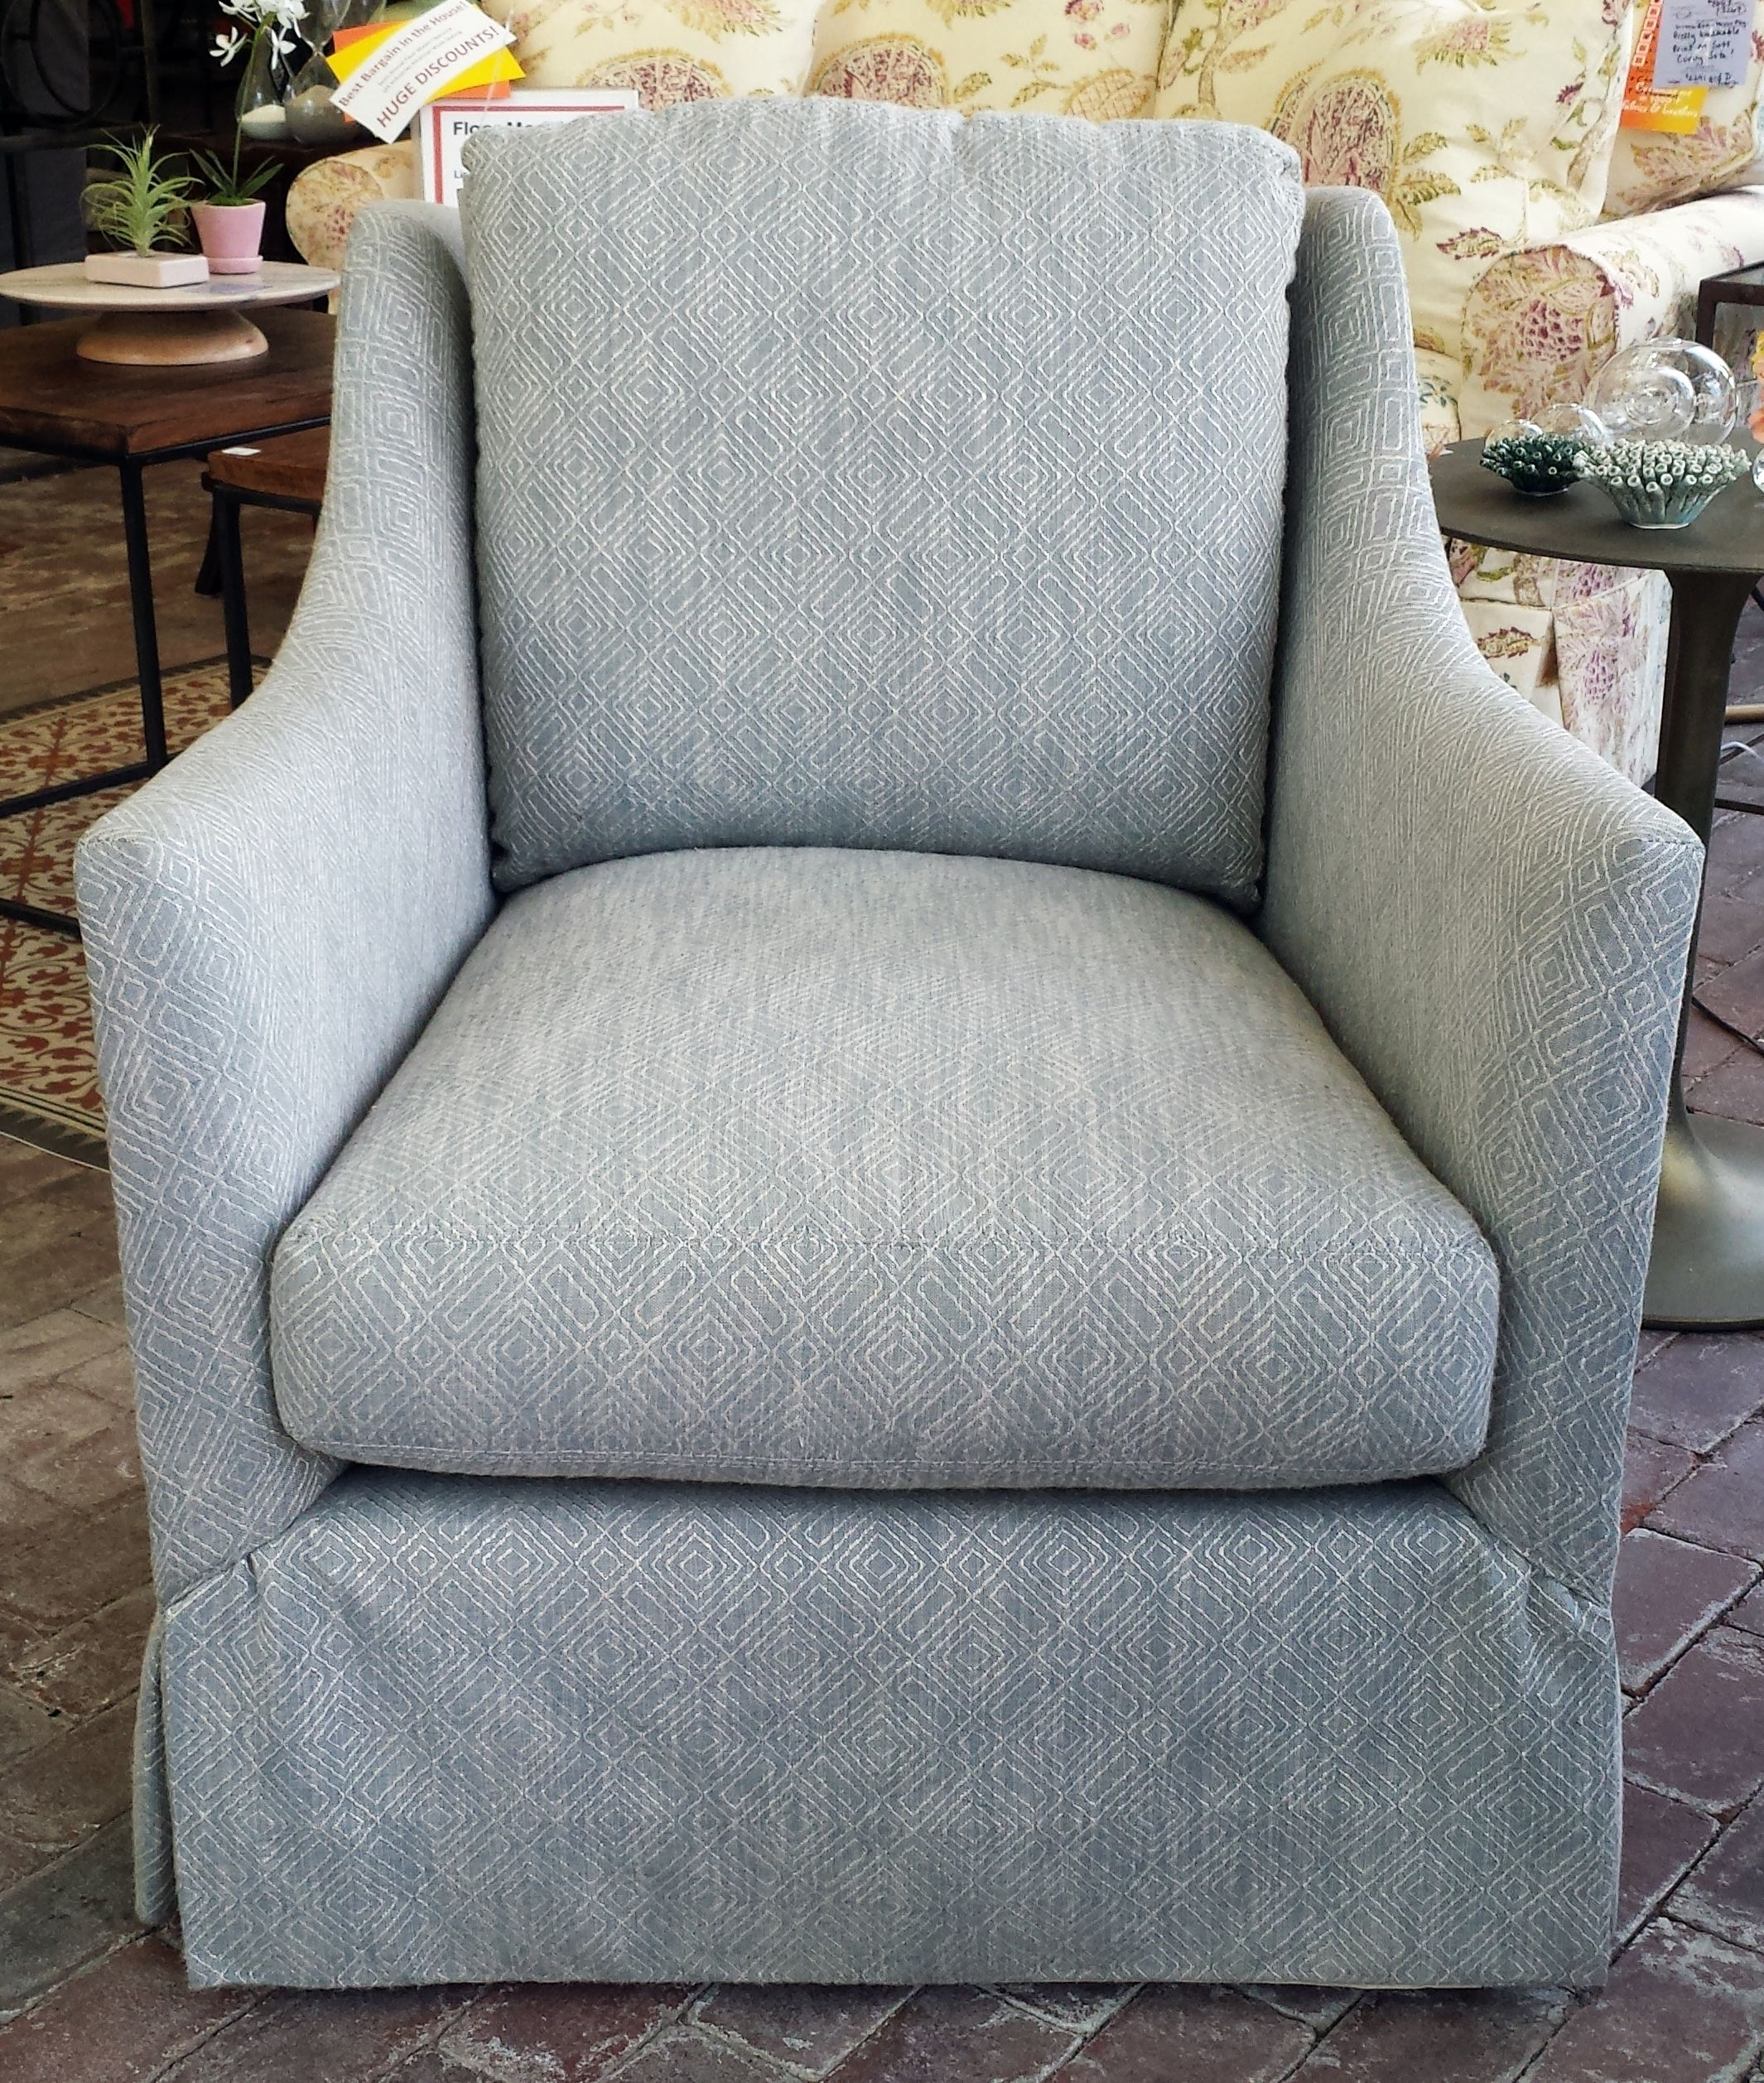 Awesome LEE Industries 3821 01 Swivel Chair In Metric Ocean. This Sweet Little Swivel  Chair